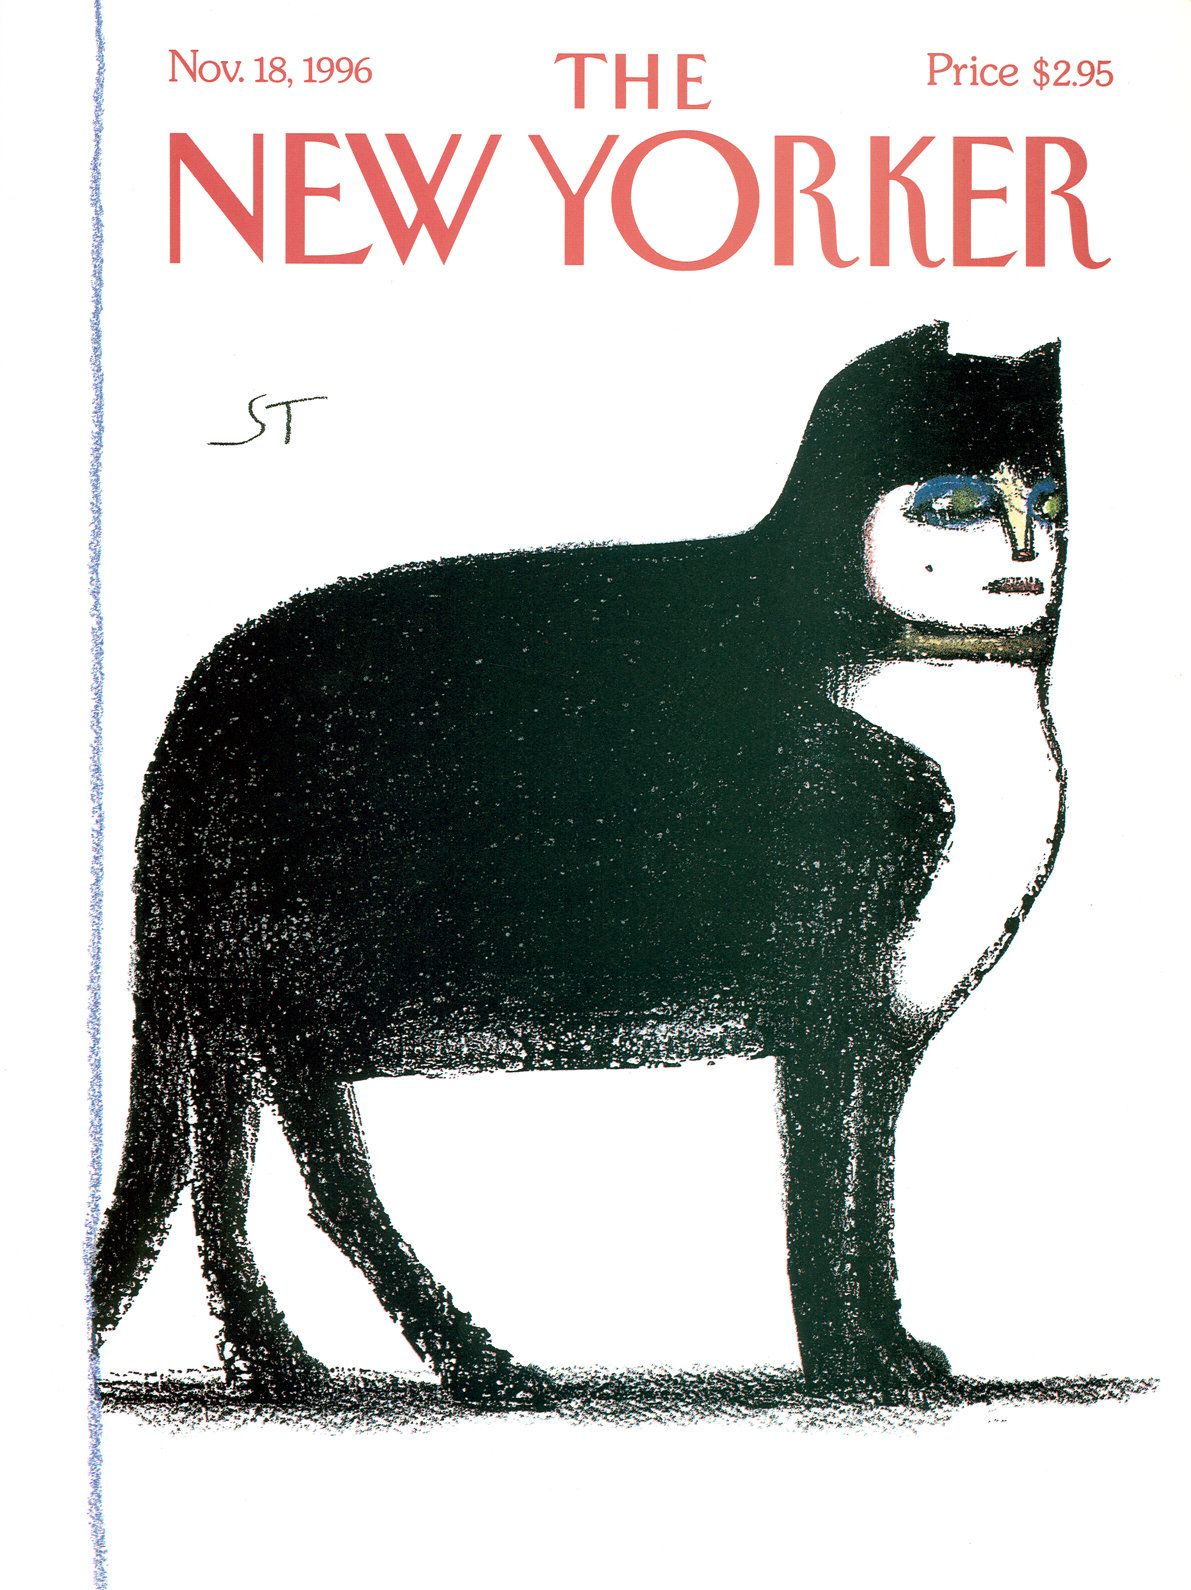 """The New Yorker - Monday, November 18, 1996 - Issue # 3729 - Vol. 72 - N° 35 - Cover """"Cat"""" by Saul Steinberg"""